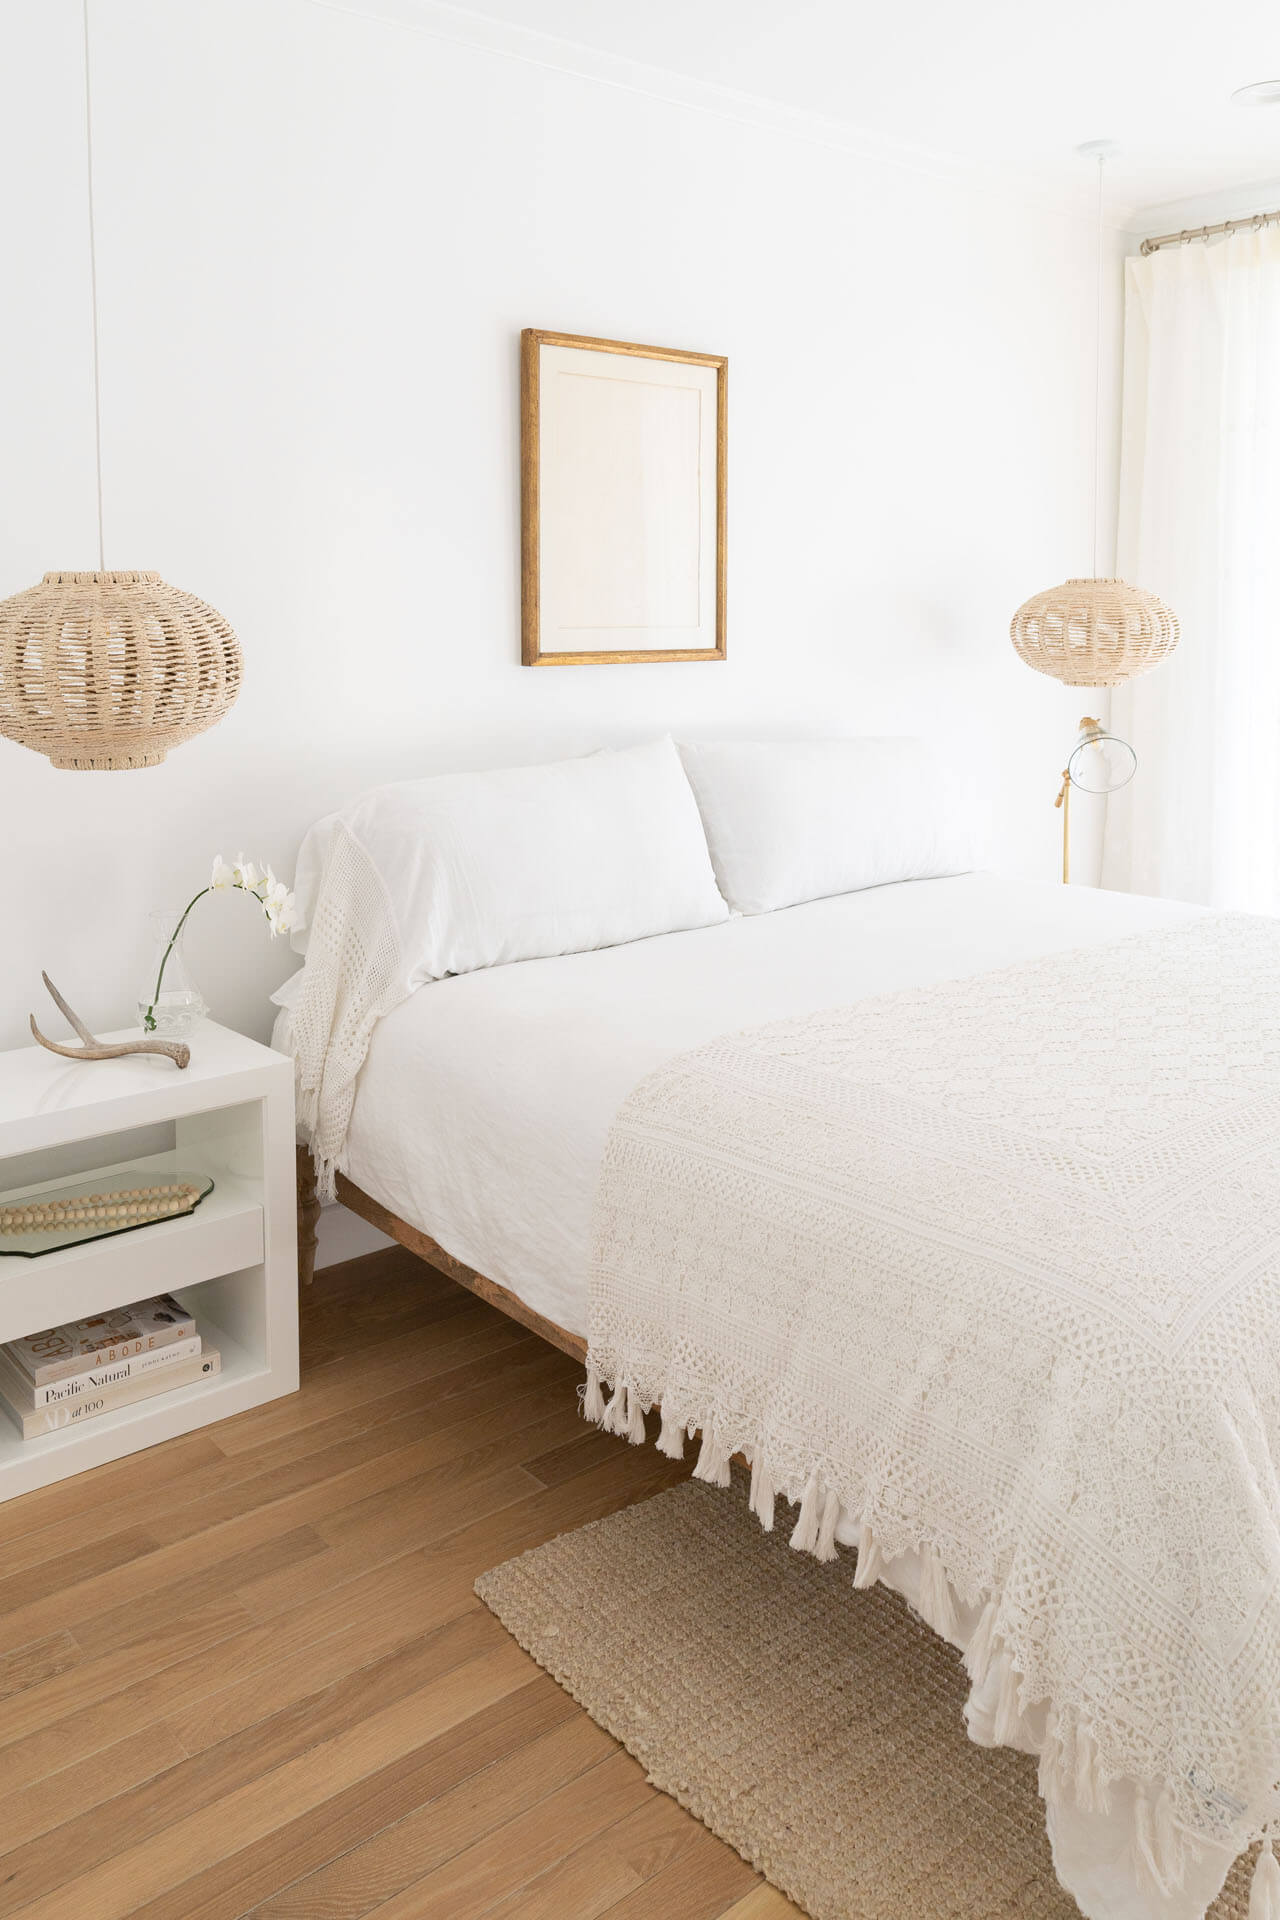 Guest bedroom with white decor and wood flooring